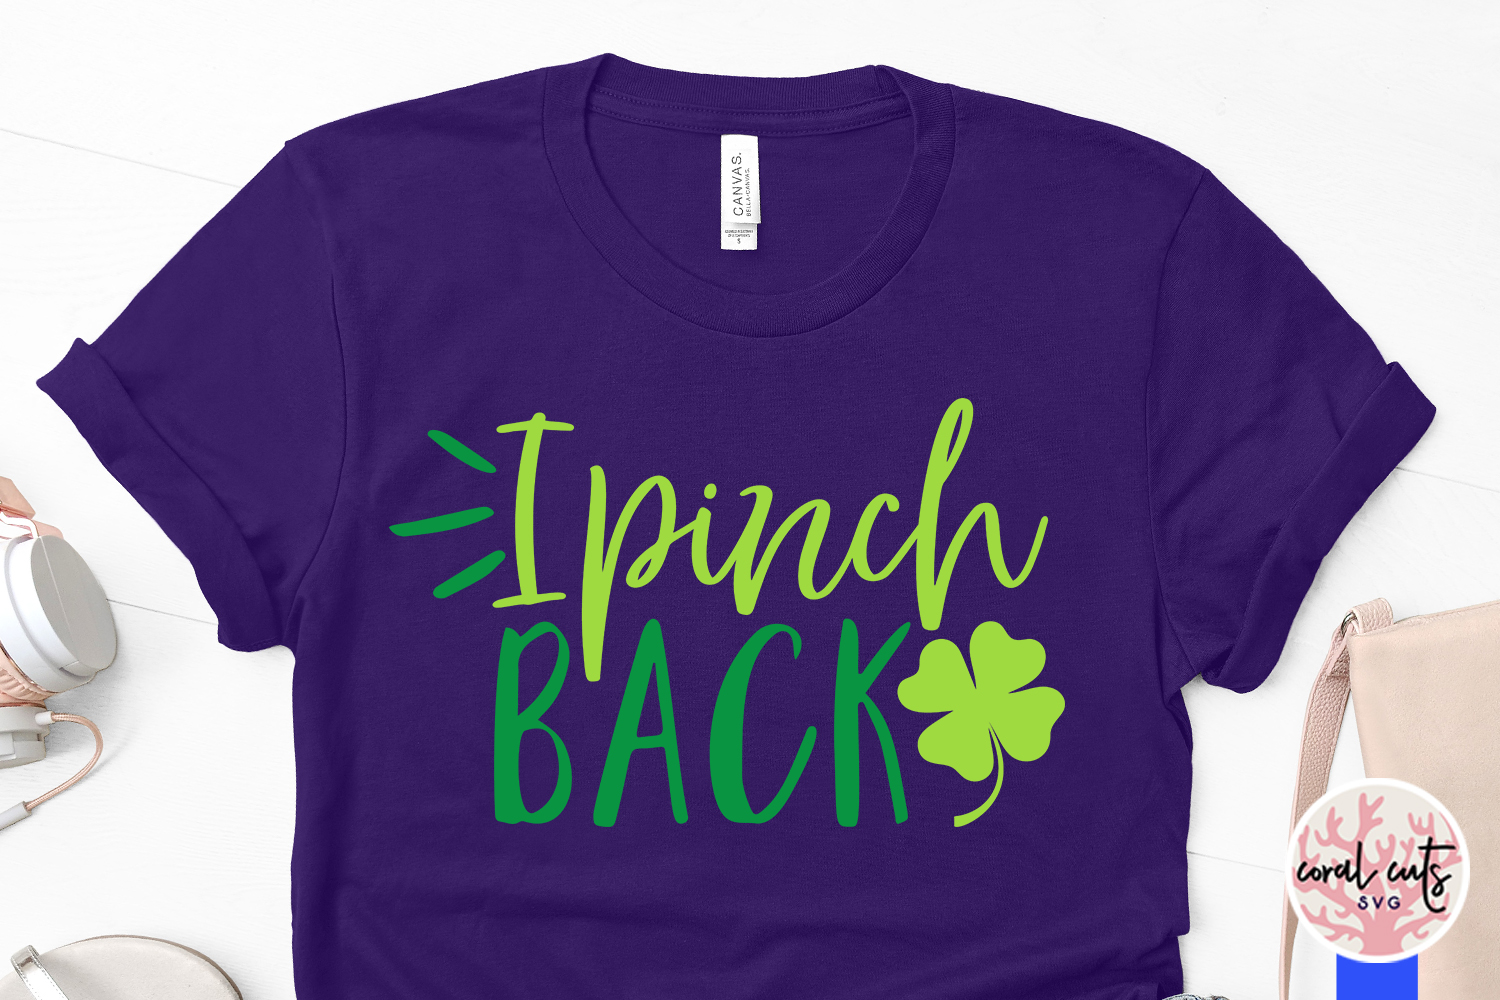 I pinch back - St. Patrick's Day SVG EPS DXF PNG example image 3